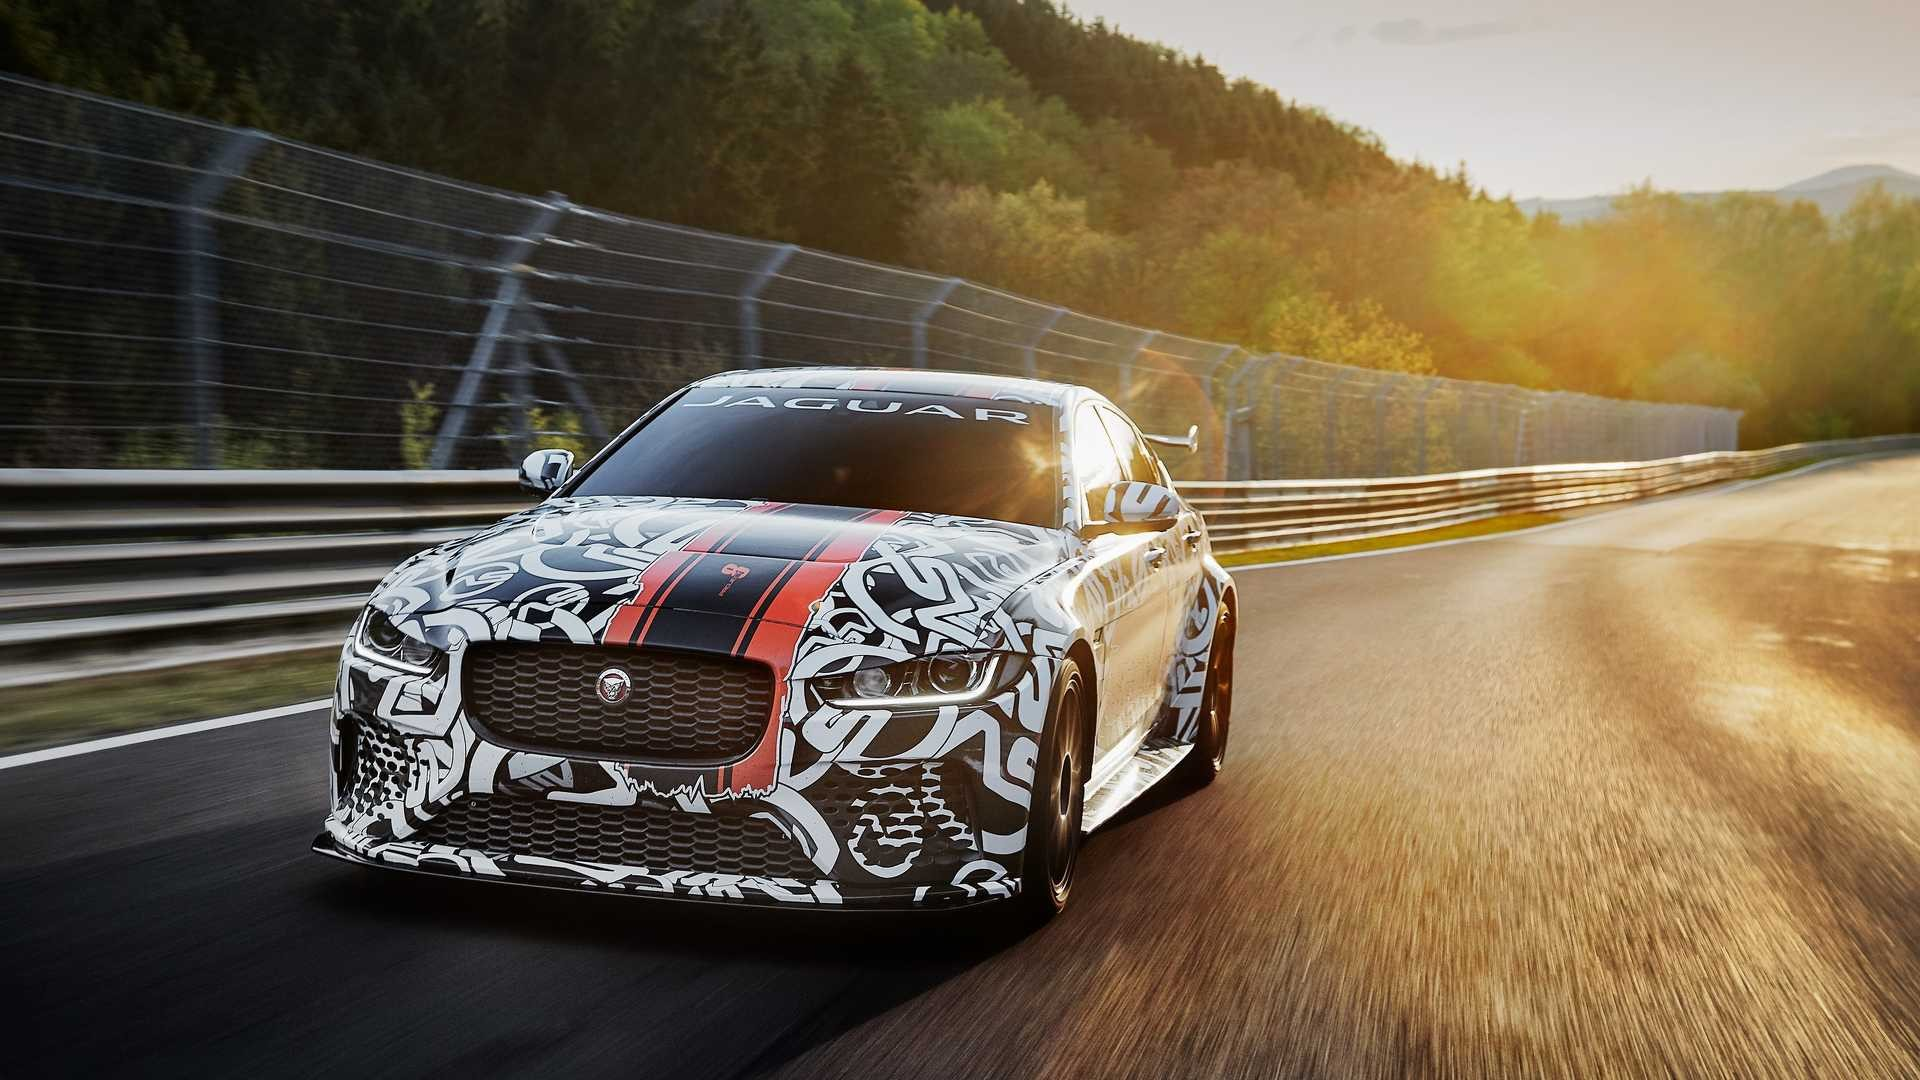 Jaguar XE SV Project 8 prototype testing Nurburgring World Copyright: Patrick Gosling / Beadyeye Ref:  XE_SV_Project8_NBR-1164.CR2